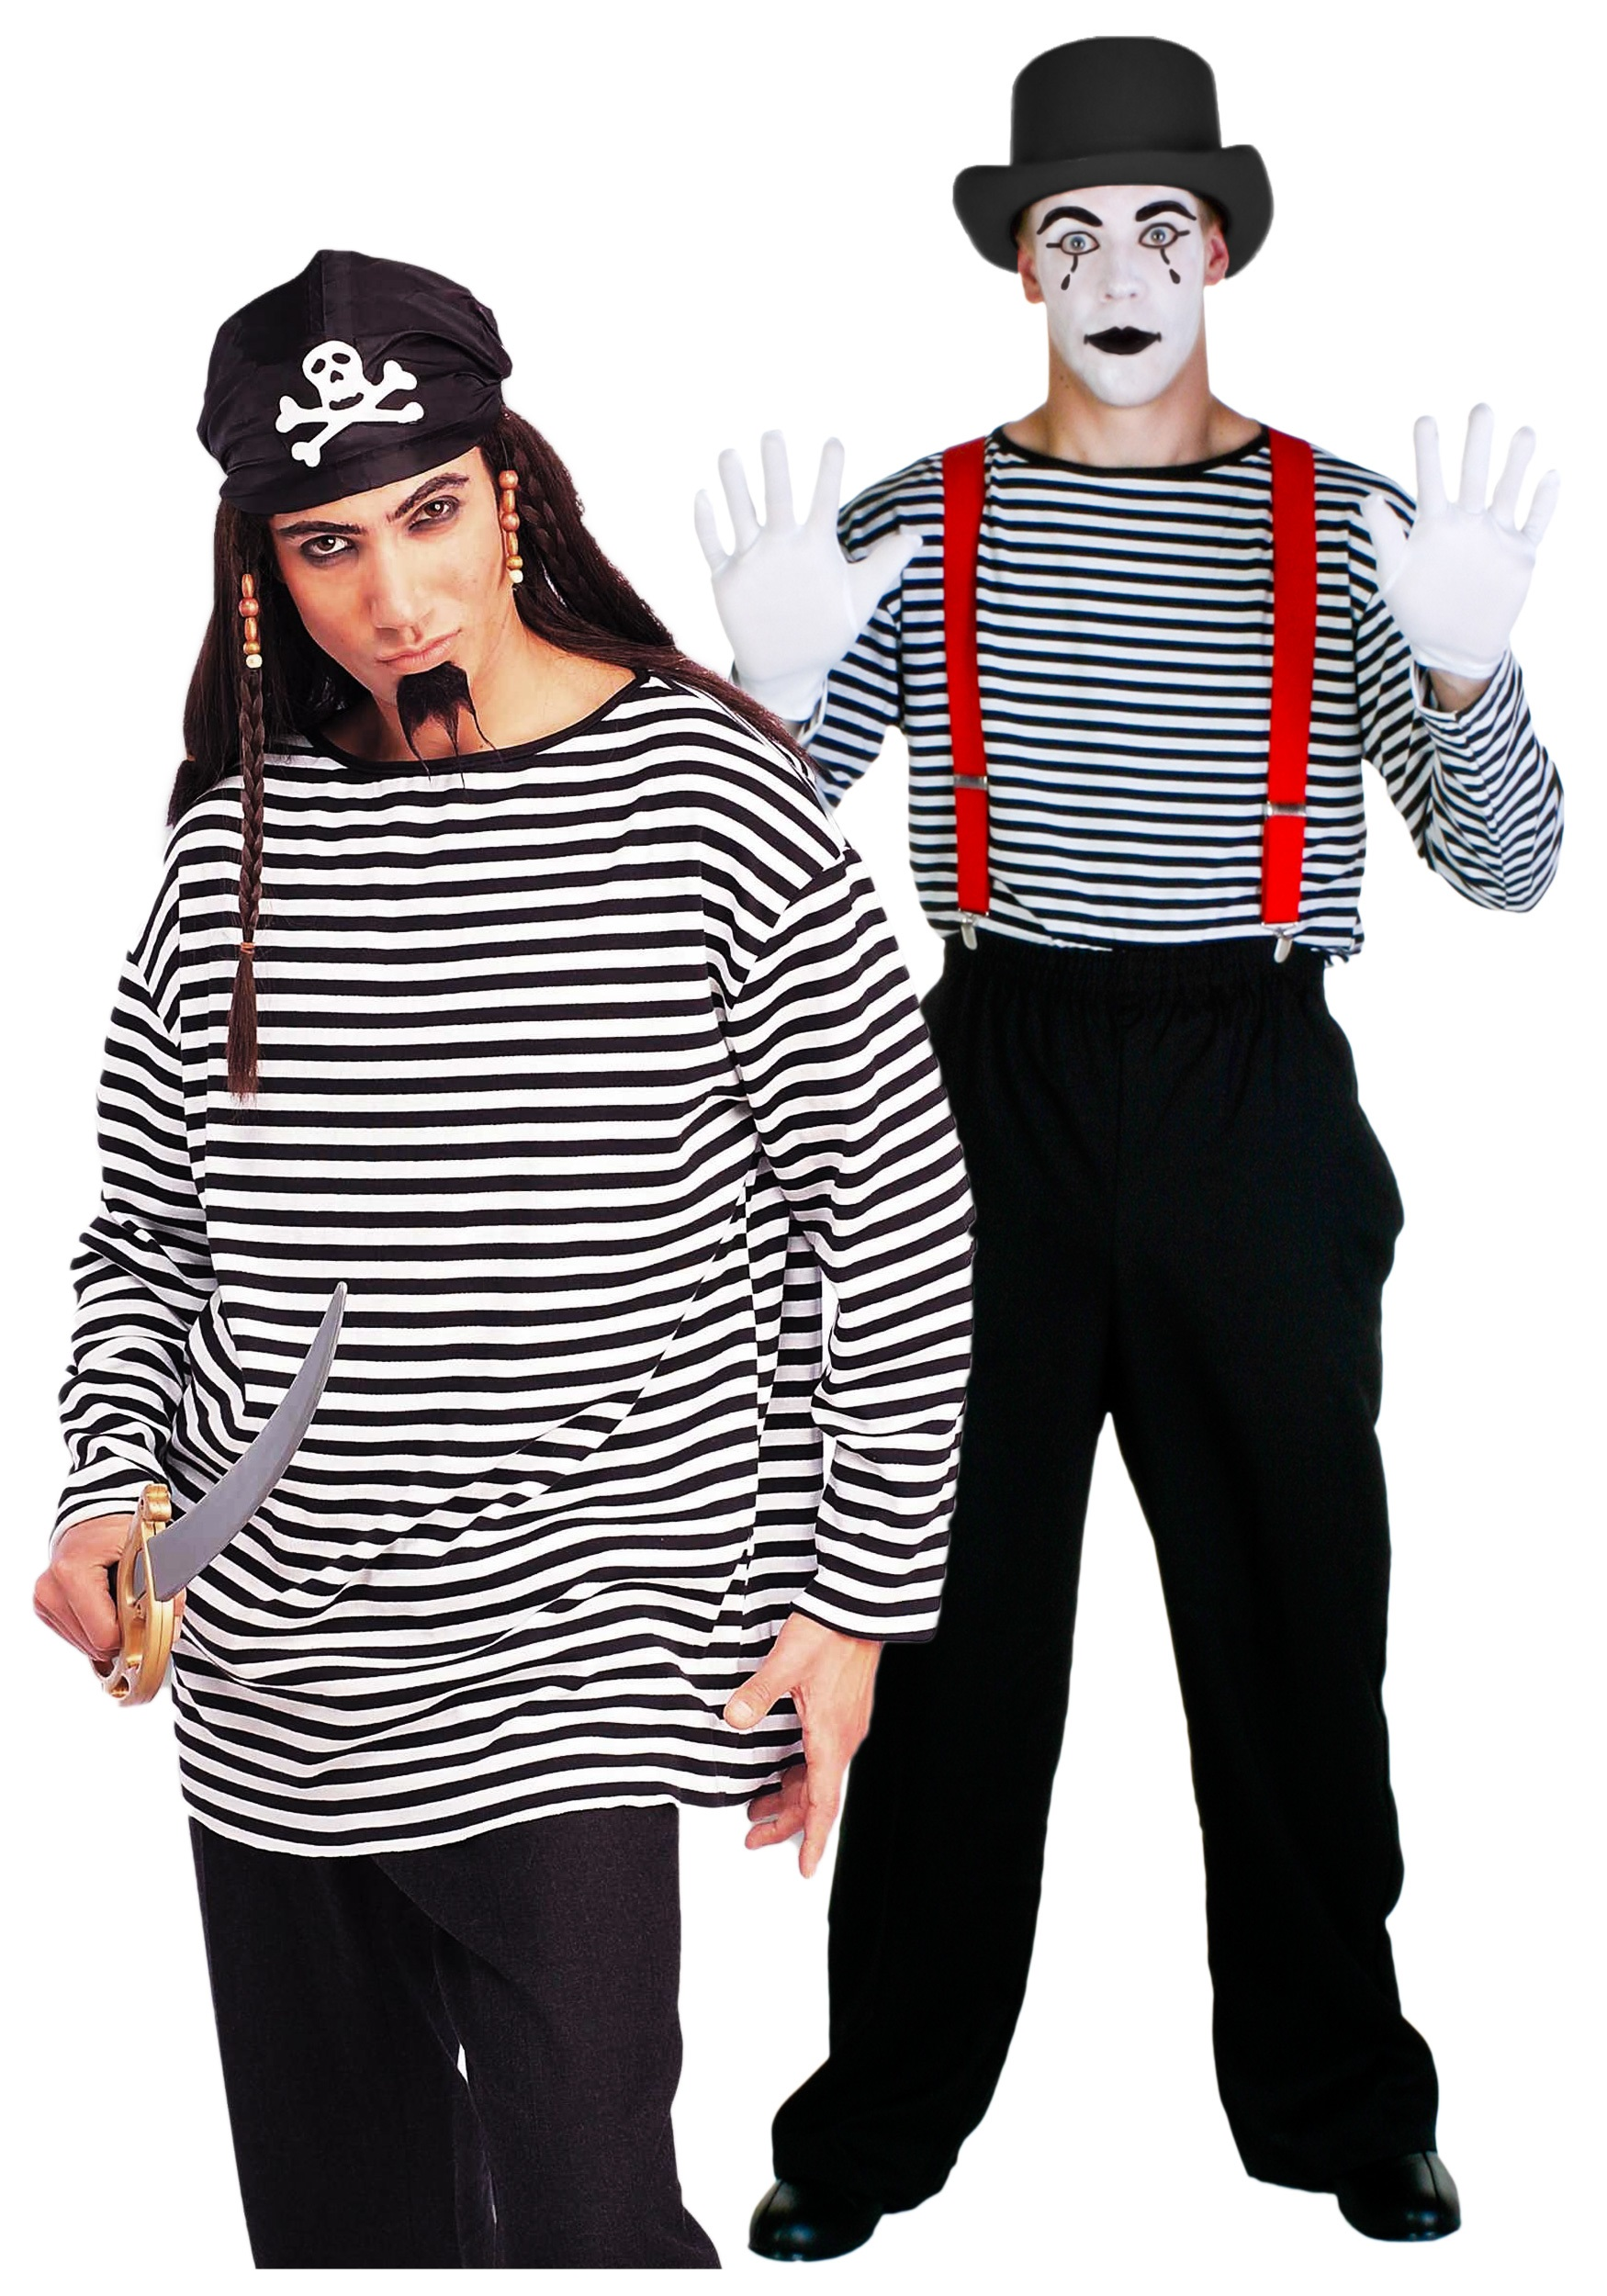 Adult Striped Costume Shirt  sc 1 st  Halloween Costume & Adult Striped Costume Shirt - Adult Mime Halloween Costume Ideas